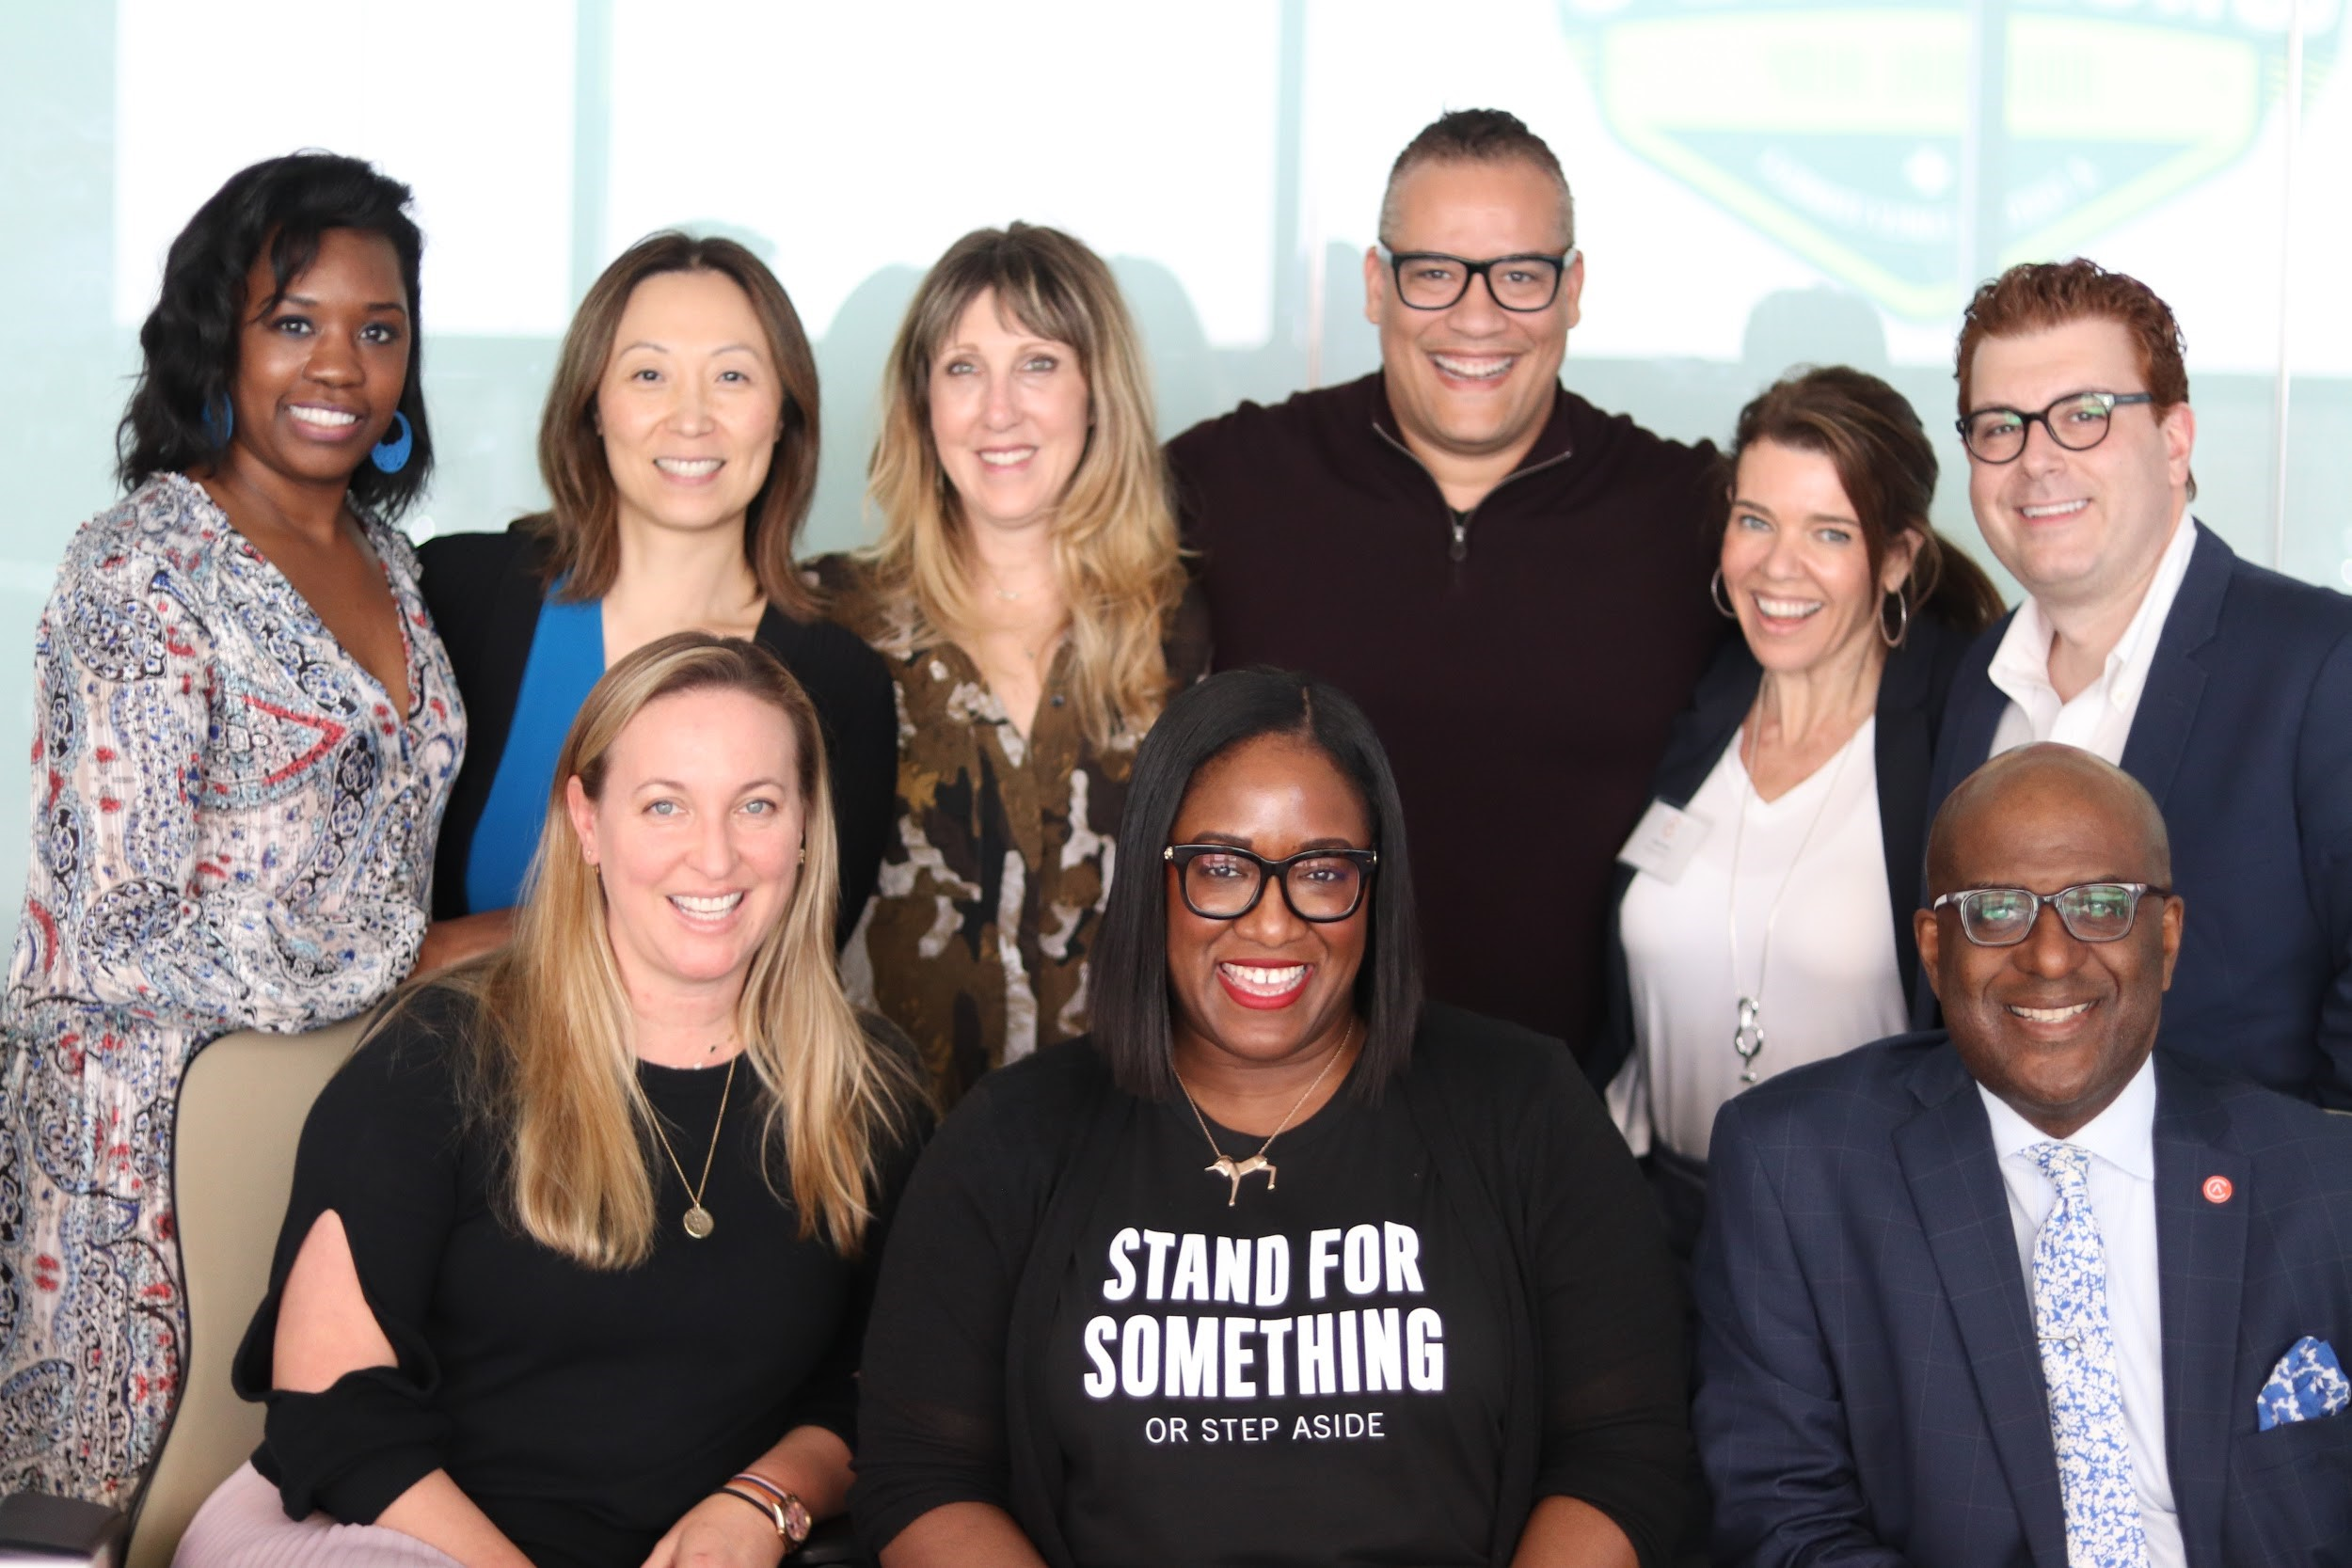 The 13th Annual ADCOLOR Awards Judging